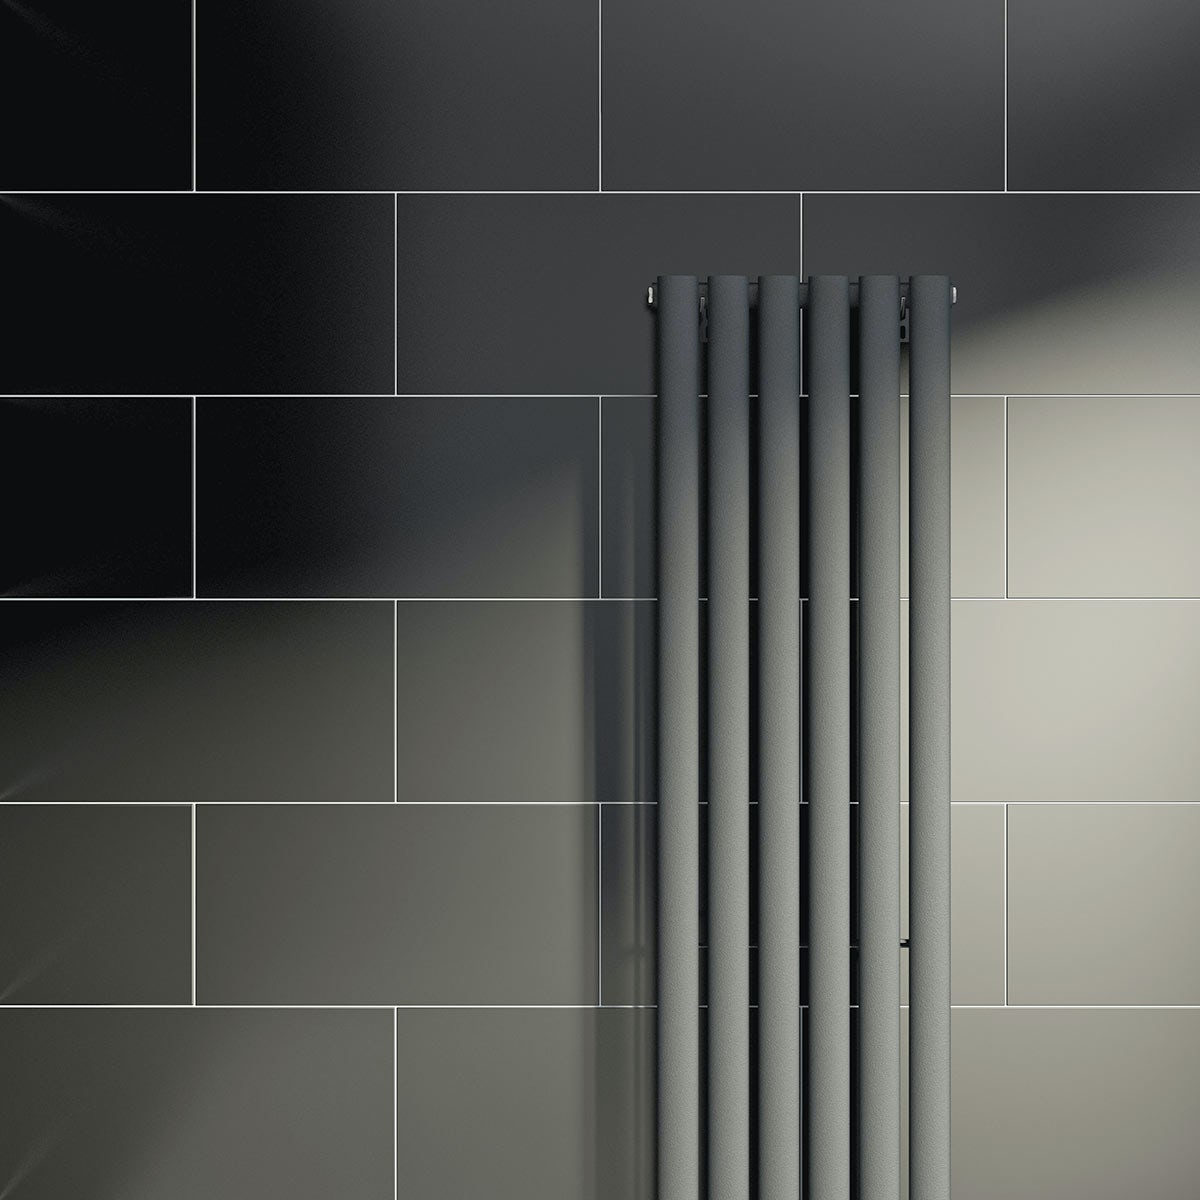 British Ceramic Tile Pure black satin tile 298mm x 498mm - Sold by Victoria Plum